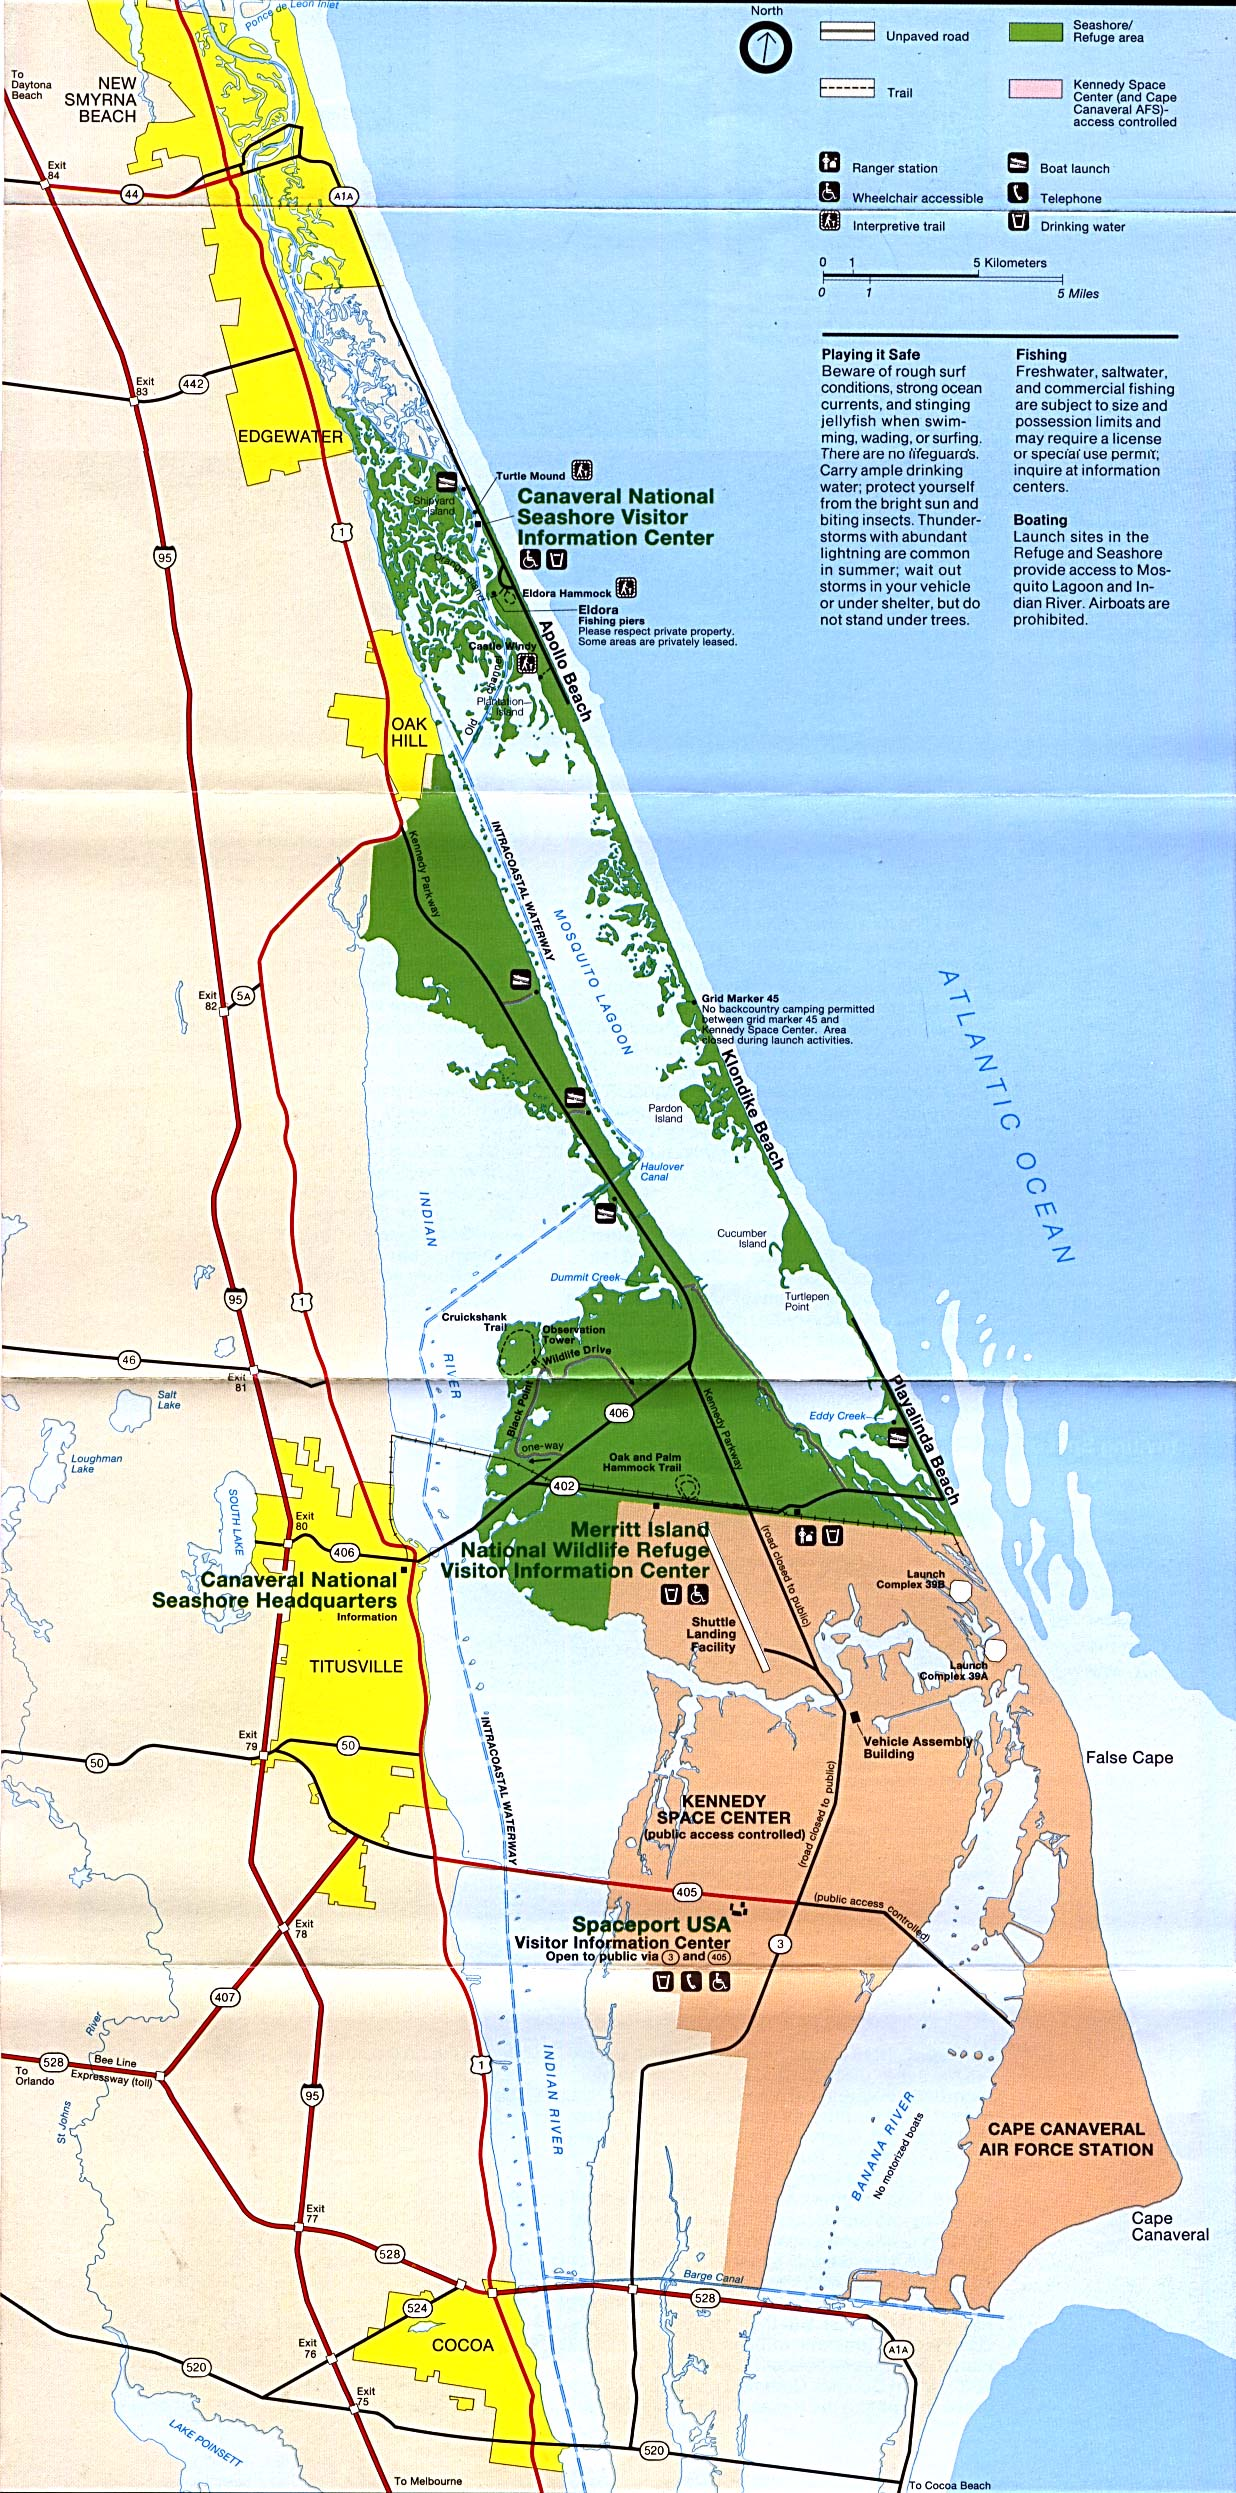 Maps of United States National Parks, Monuments and Historic Sites Canaveral and Merritt Island National Seashore [Florida] (Park Map) 1993 (612K)